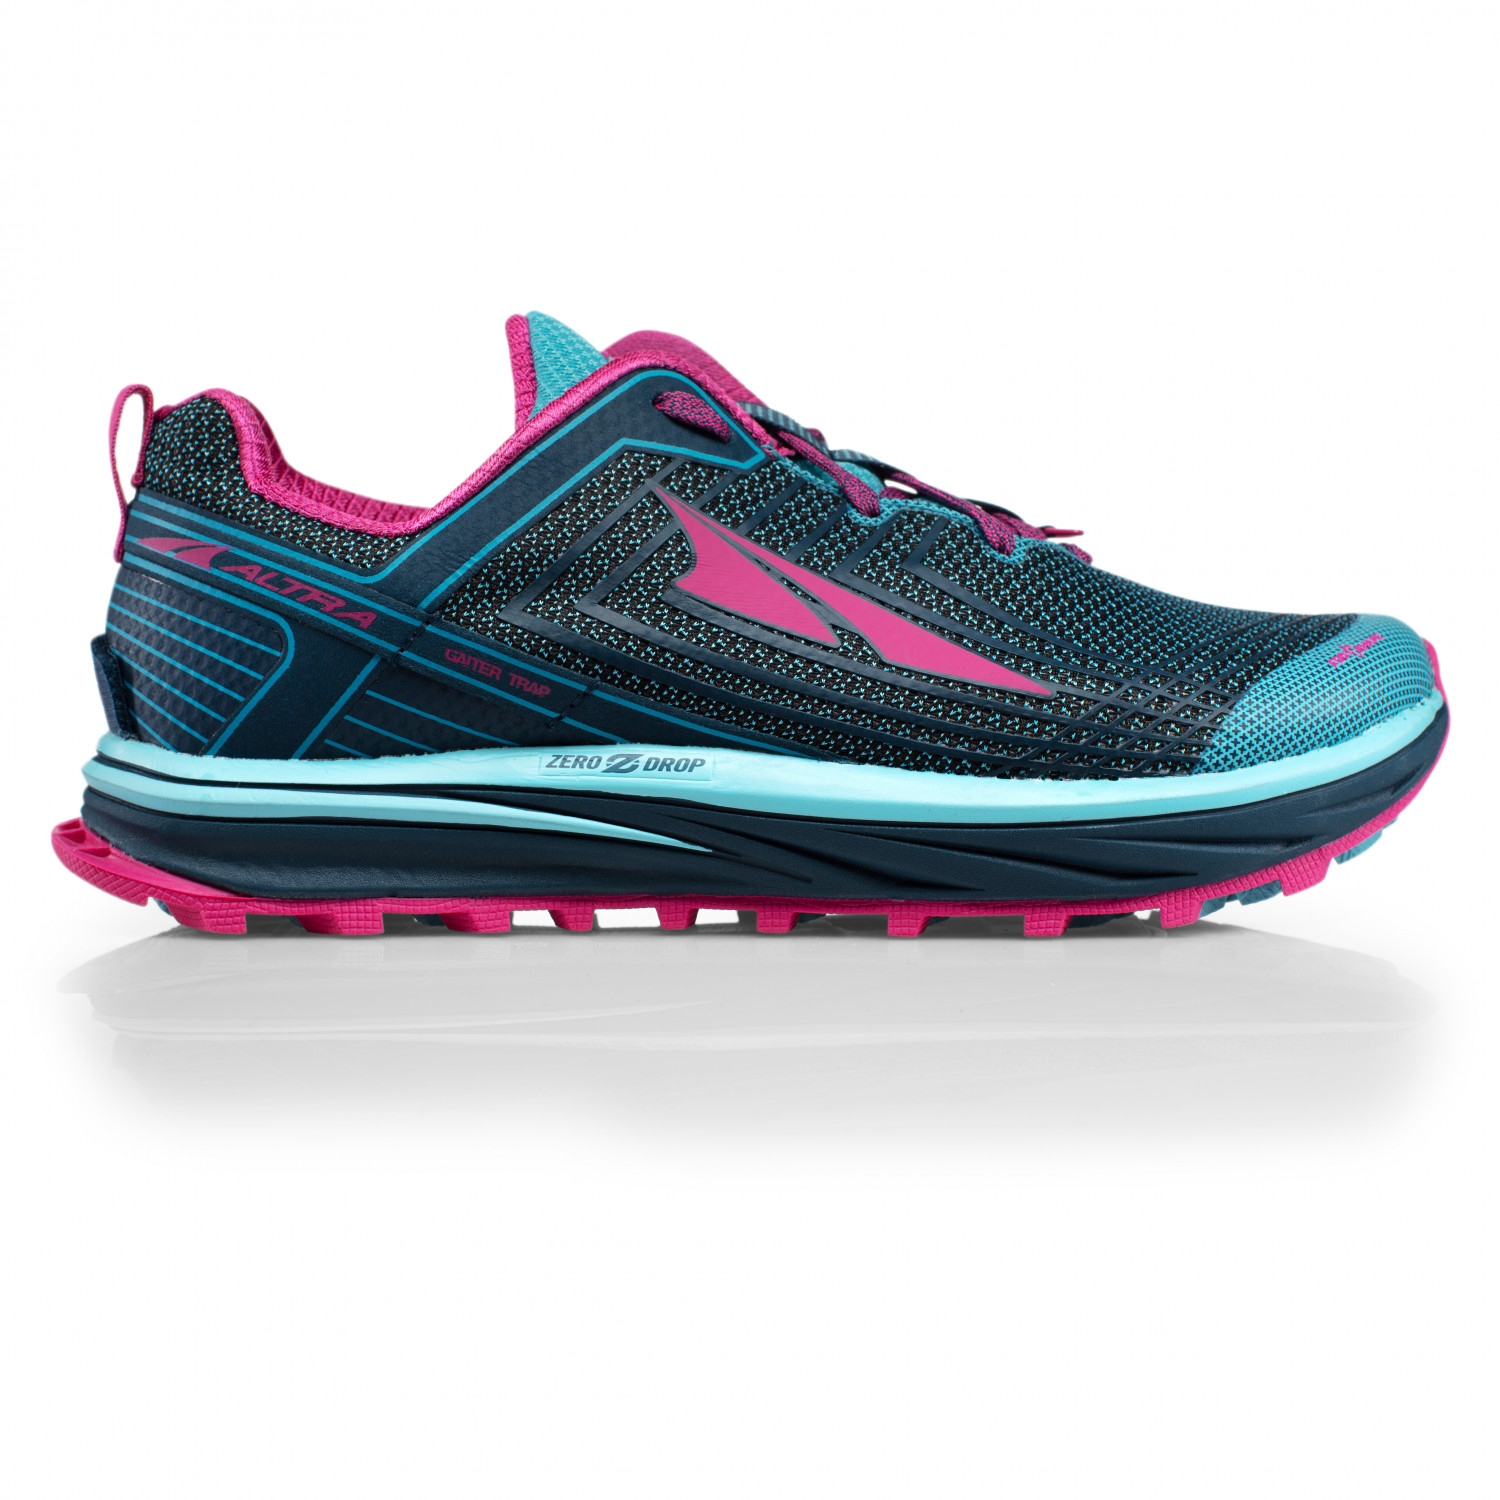 quality design 9bd0b e1edc Altra - Women's Timp 1.5 - Trail running shoes - Blue / Raspberry | 6,5 (US)